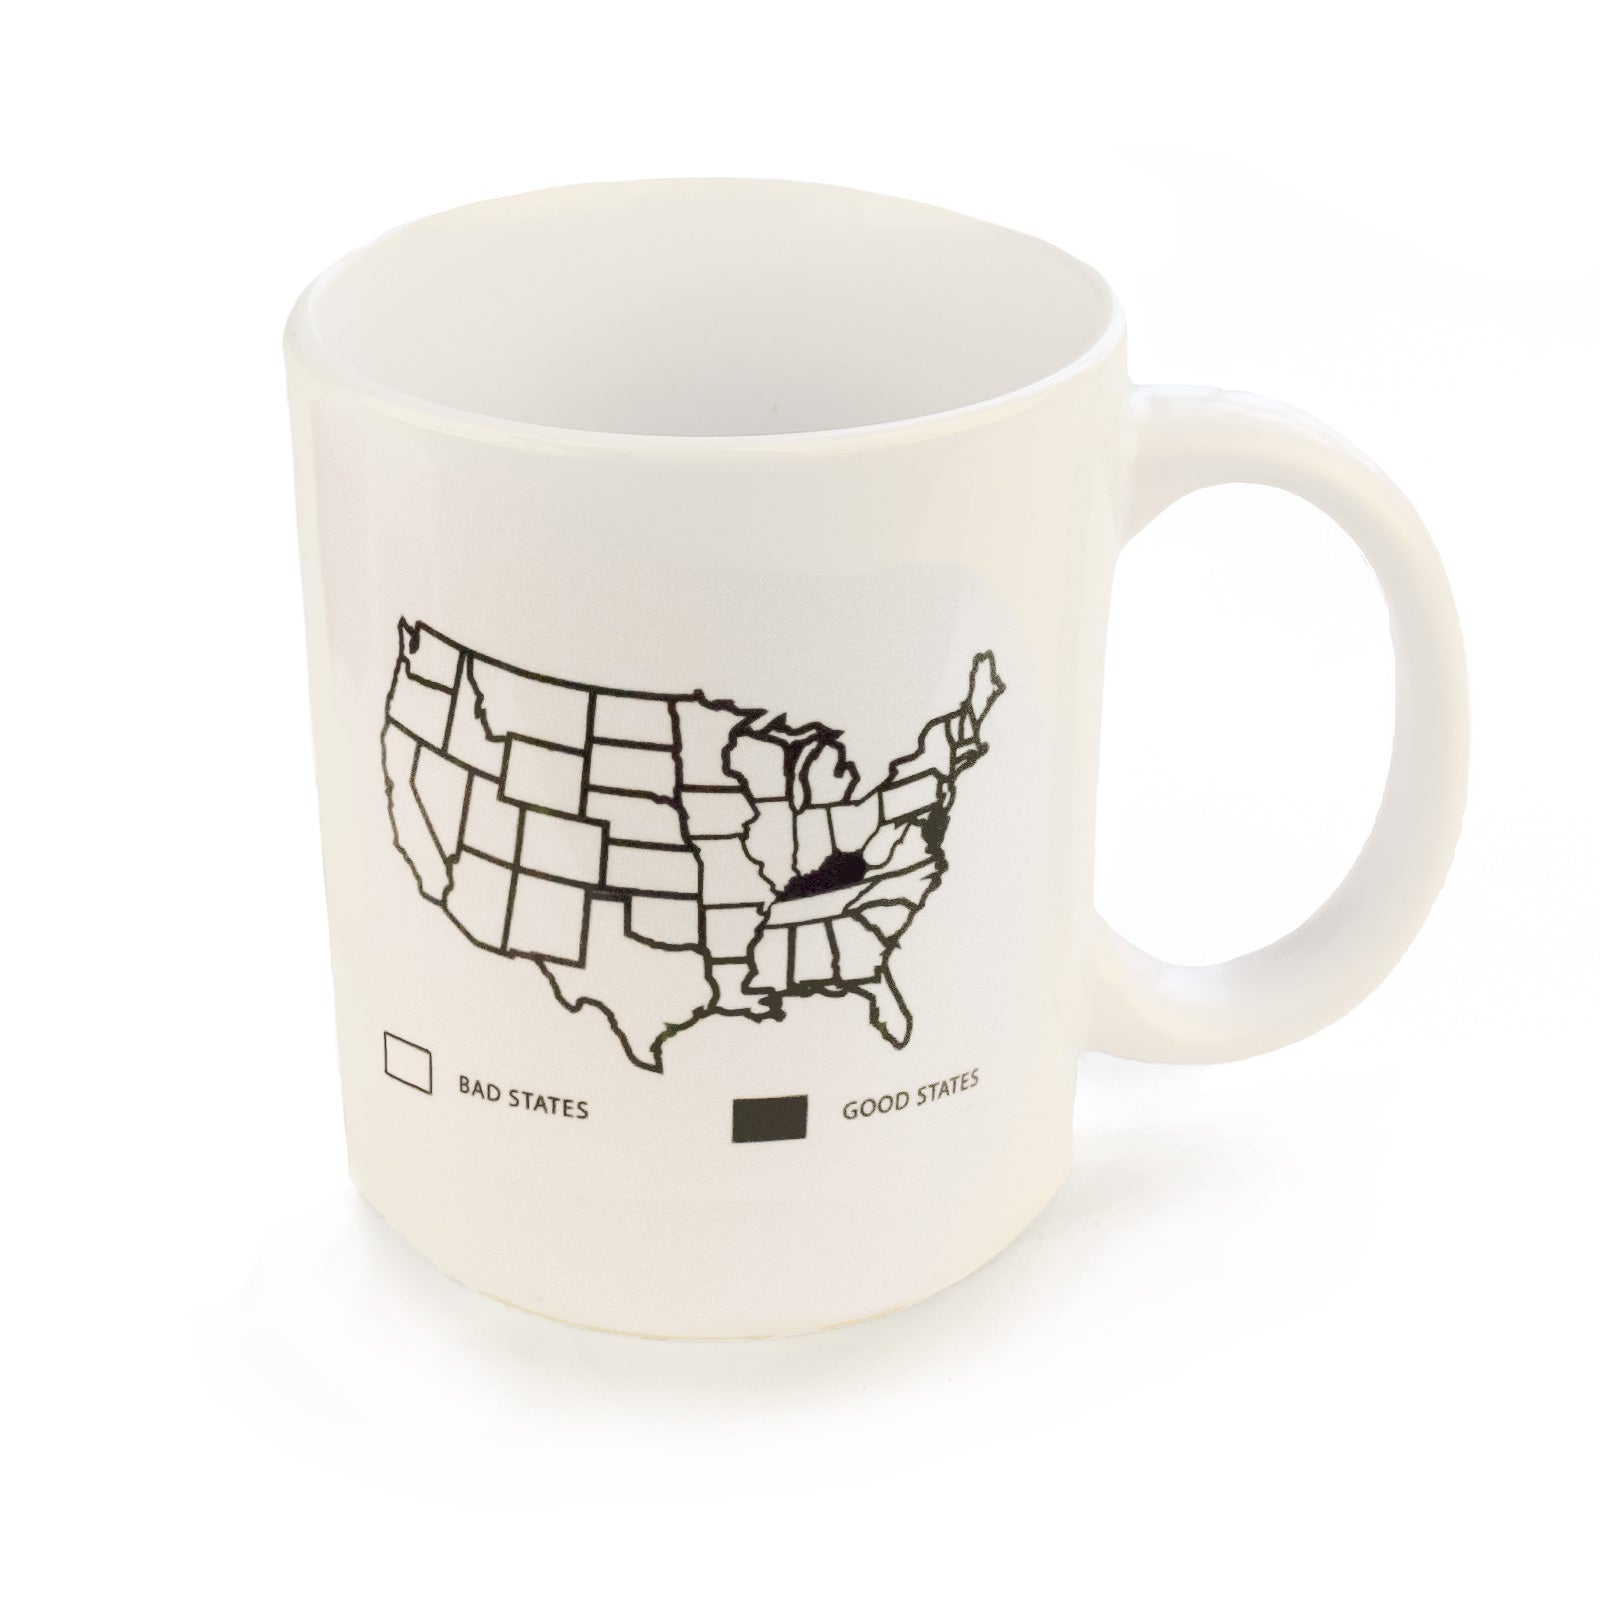 Good States Bad States Mug-Odds and Ends-KY for KY Store